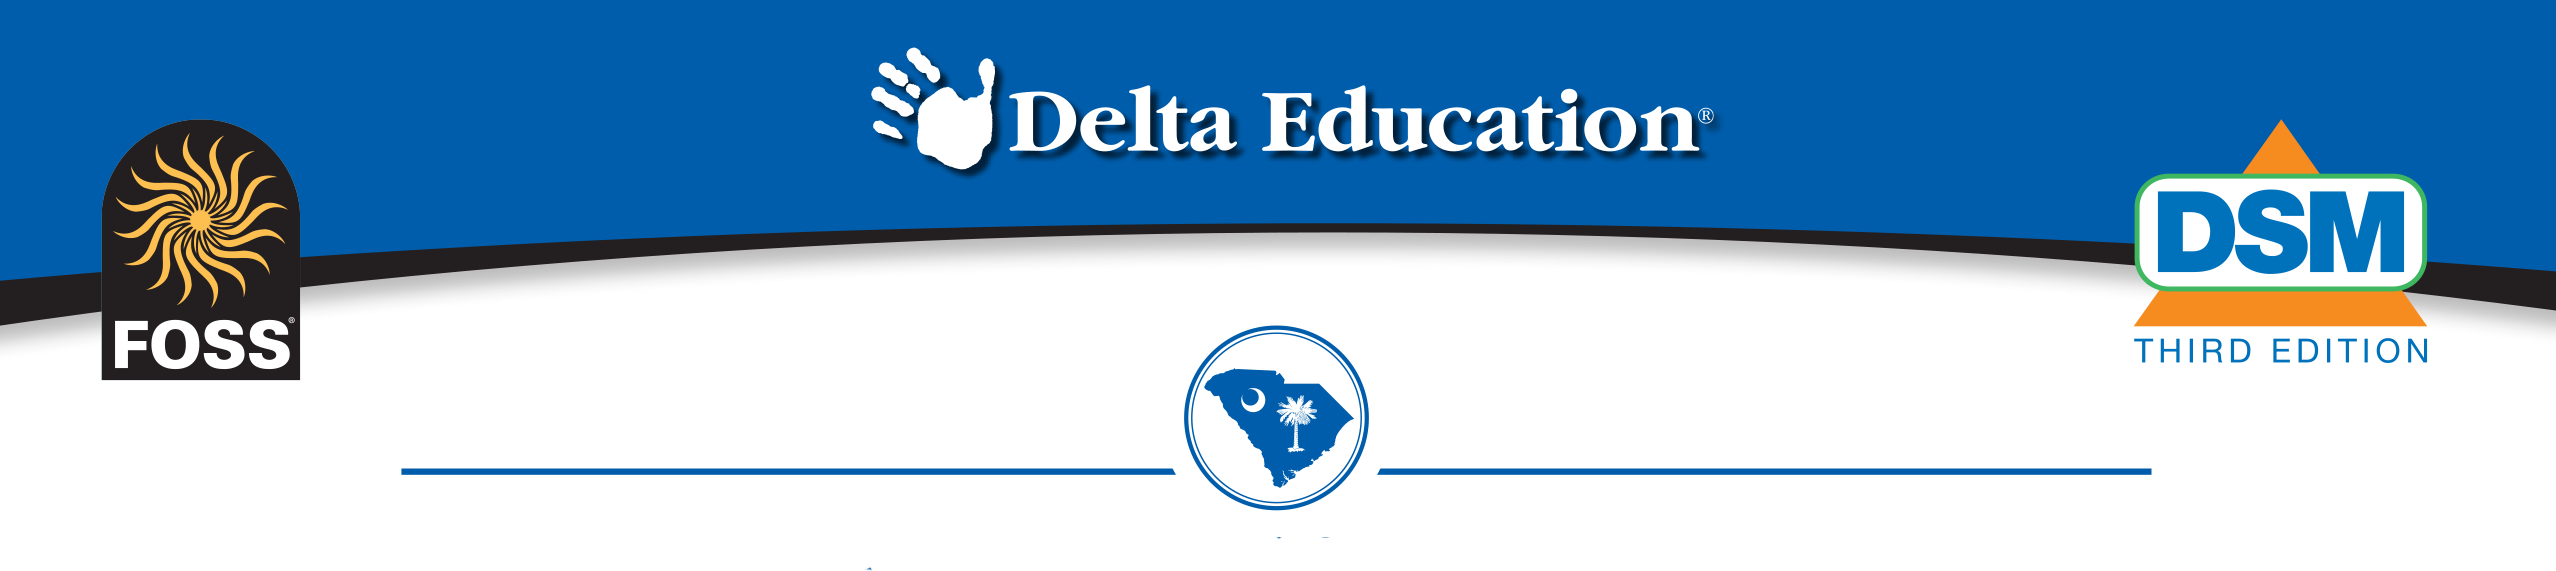 Delta Education, FOSS, and DSM logos, and South Carolina icon